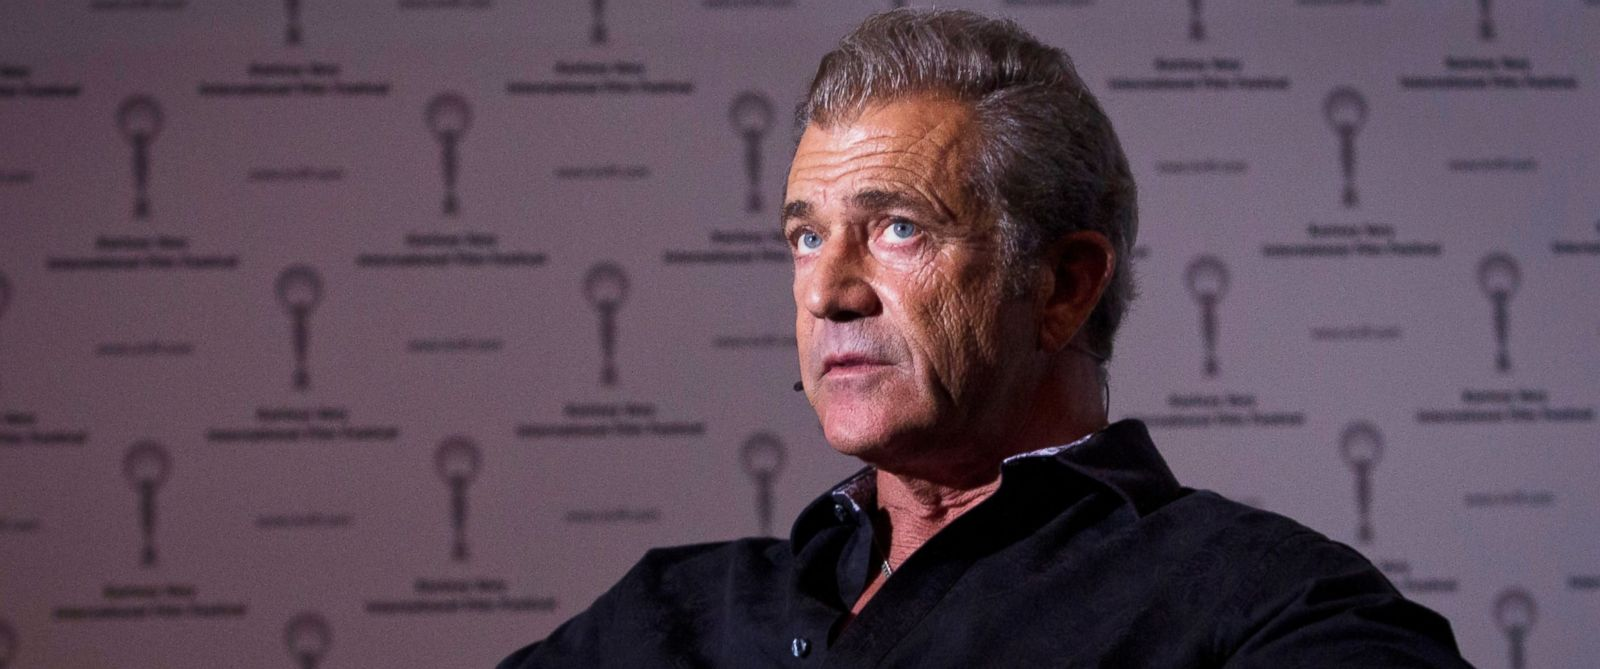 PHOTO: Actor Mel Gibson speaks at the 49th Karlovy Vary International Film Festival on July 5, 2014 in Karlovy Vary, Czech Republic.